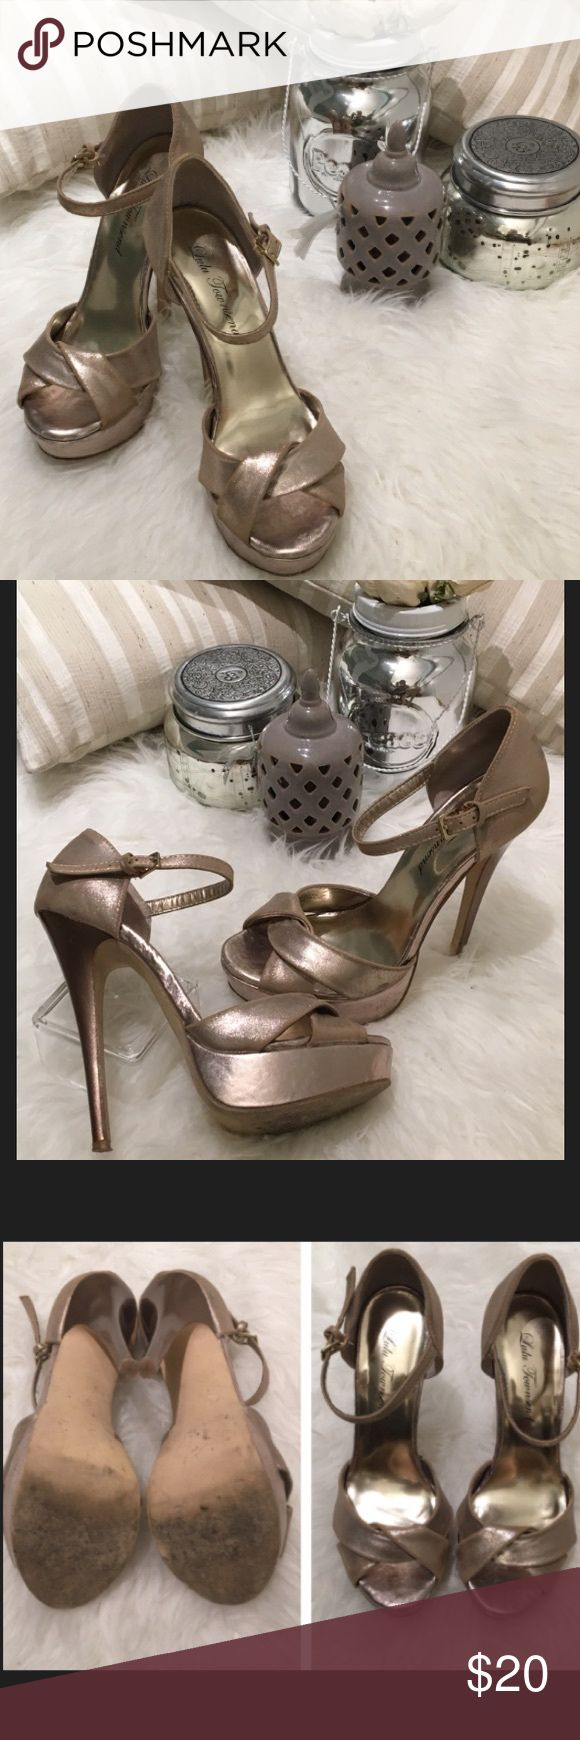 """Silver high heels sandals Lulu Townsend Silver high heels with platform in the front. Fair condition ( details of scratches shown on last pictures). 5.5"""" heel height and size 6.5 Lulu Townsend Shoes Heels"""